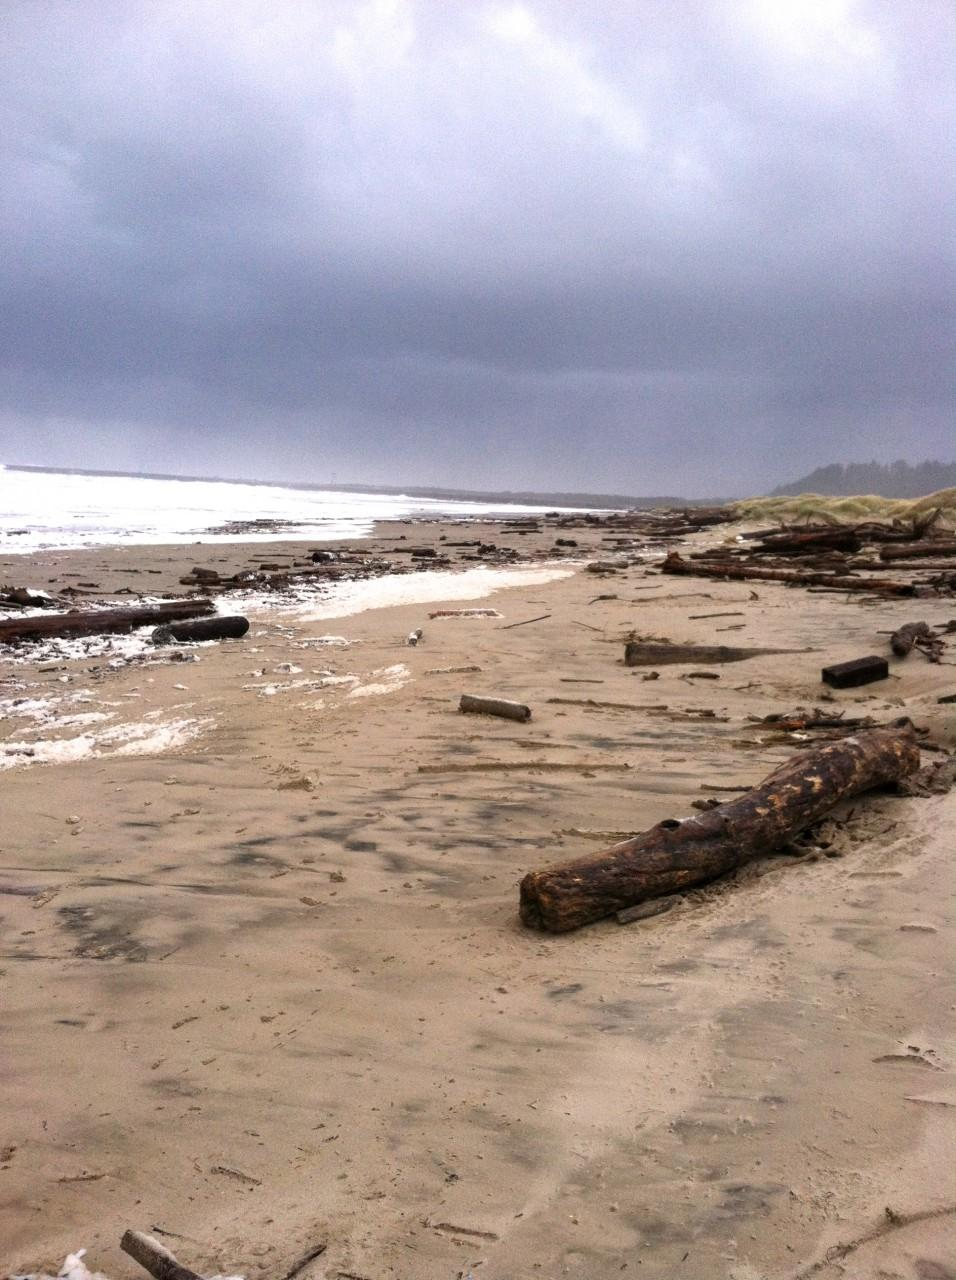 Woody debris dominated the beach.  Towards the southern end of the mile,  there was no dune erosion.